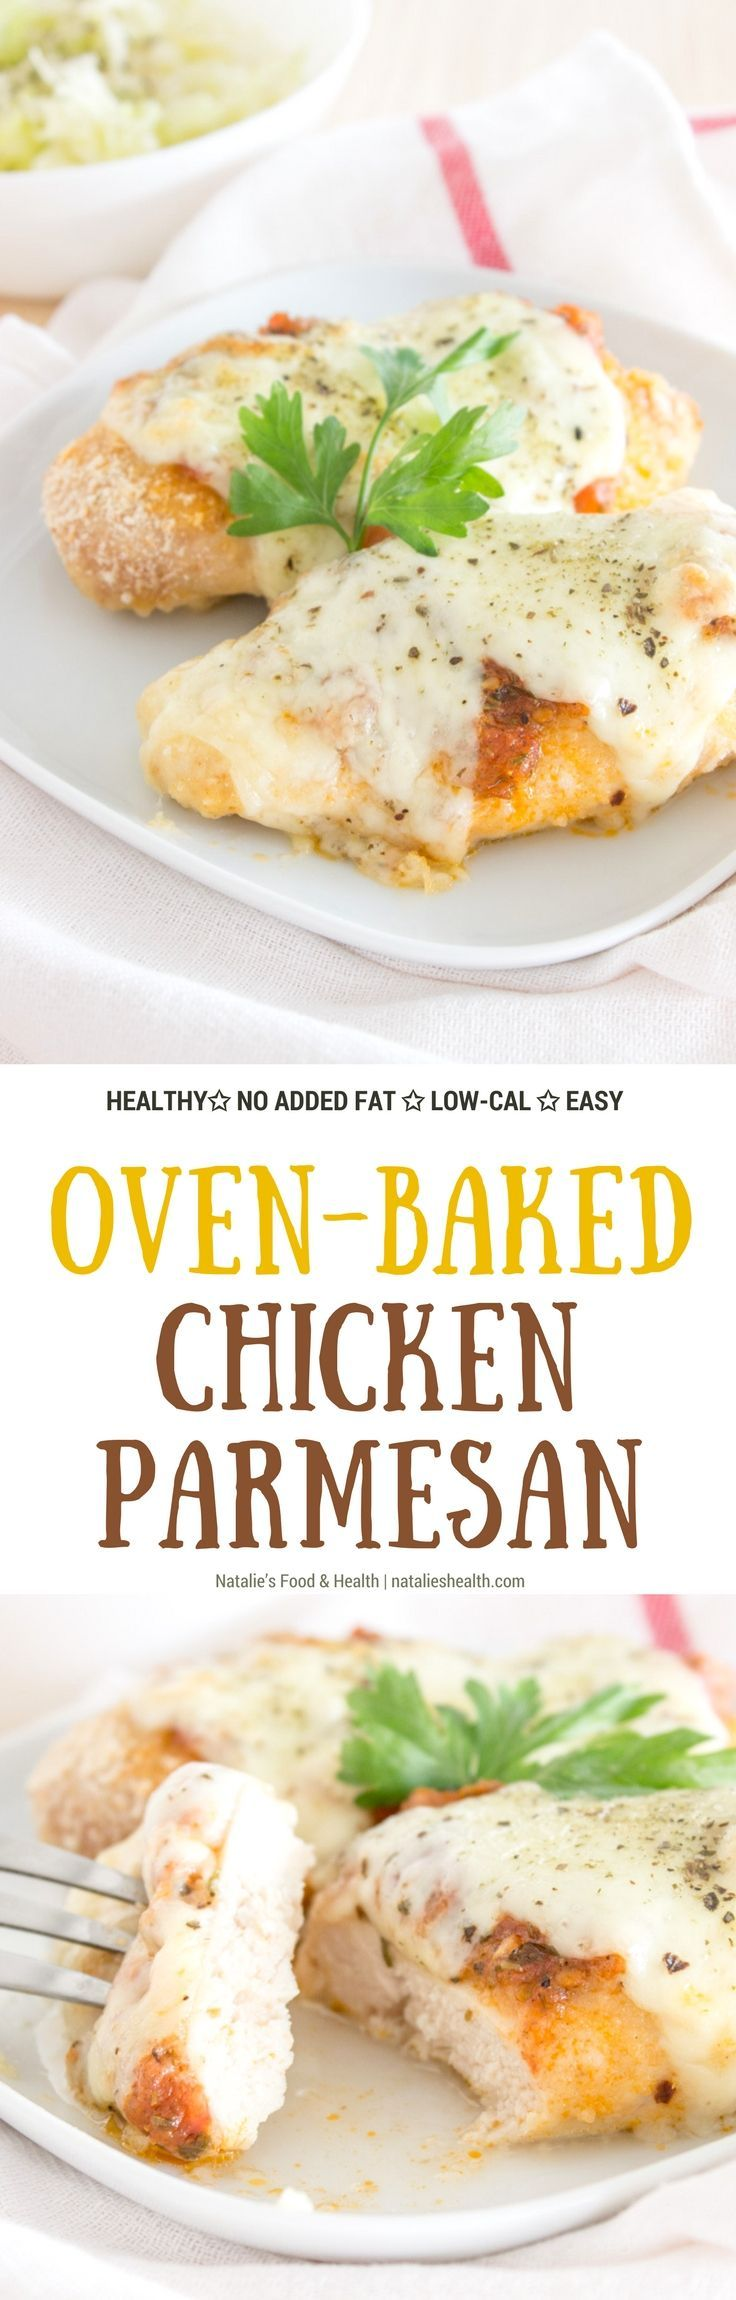 Easy OVEN-BAKED Chicken Parmesan topped with mozzarella cheese and homemade fresh tomato sauce, seasoned with fragrant mediterranean spices. HEALTHY, without added fat, easy-to-make low-calorie family weekday meal. #healthy #dinner #family #kidsfriendly #skinny #weightloss #fit   www.natalieshealth.com